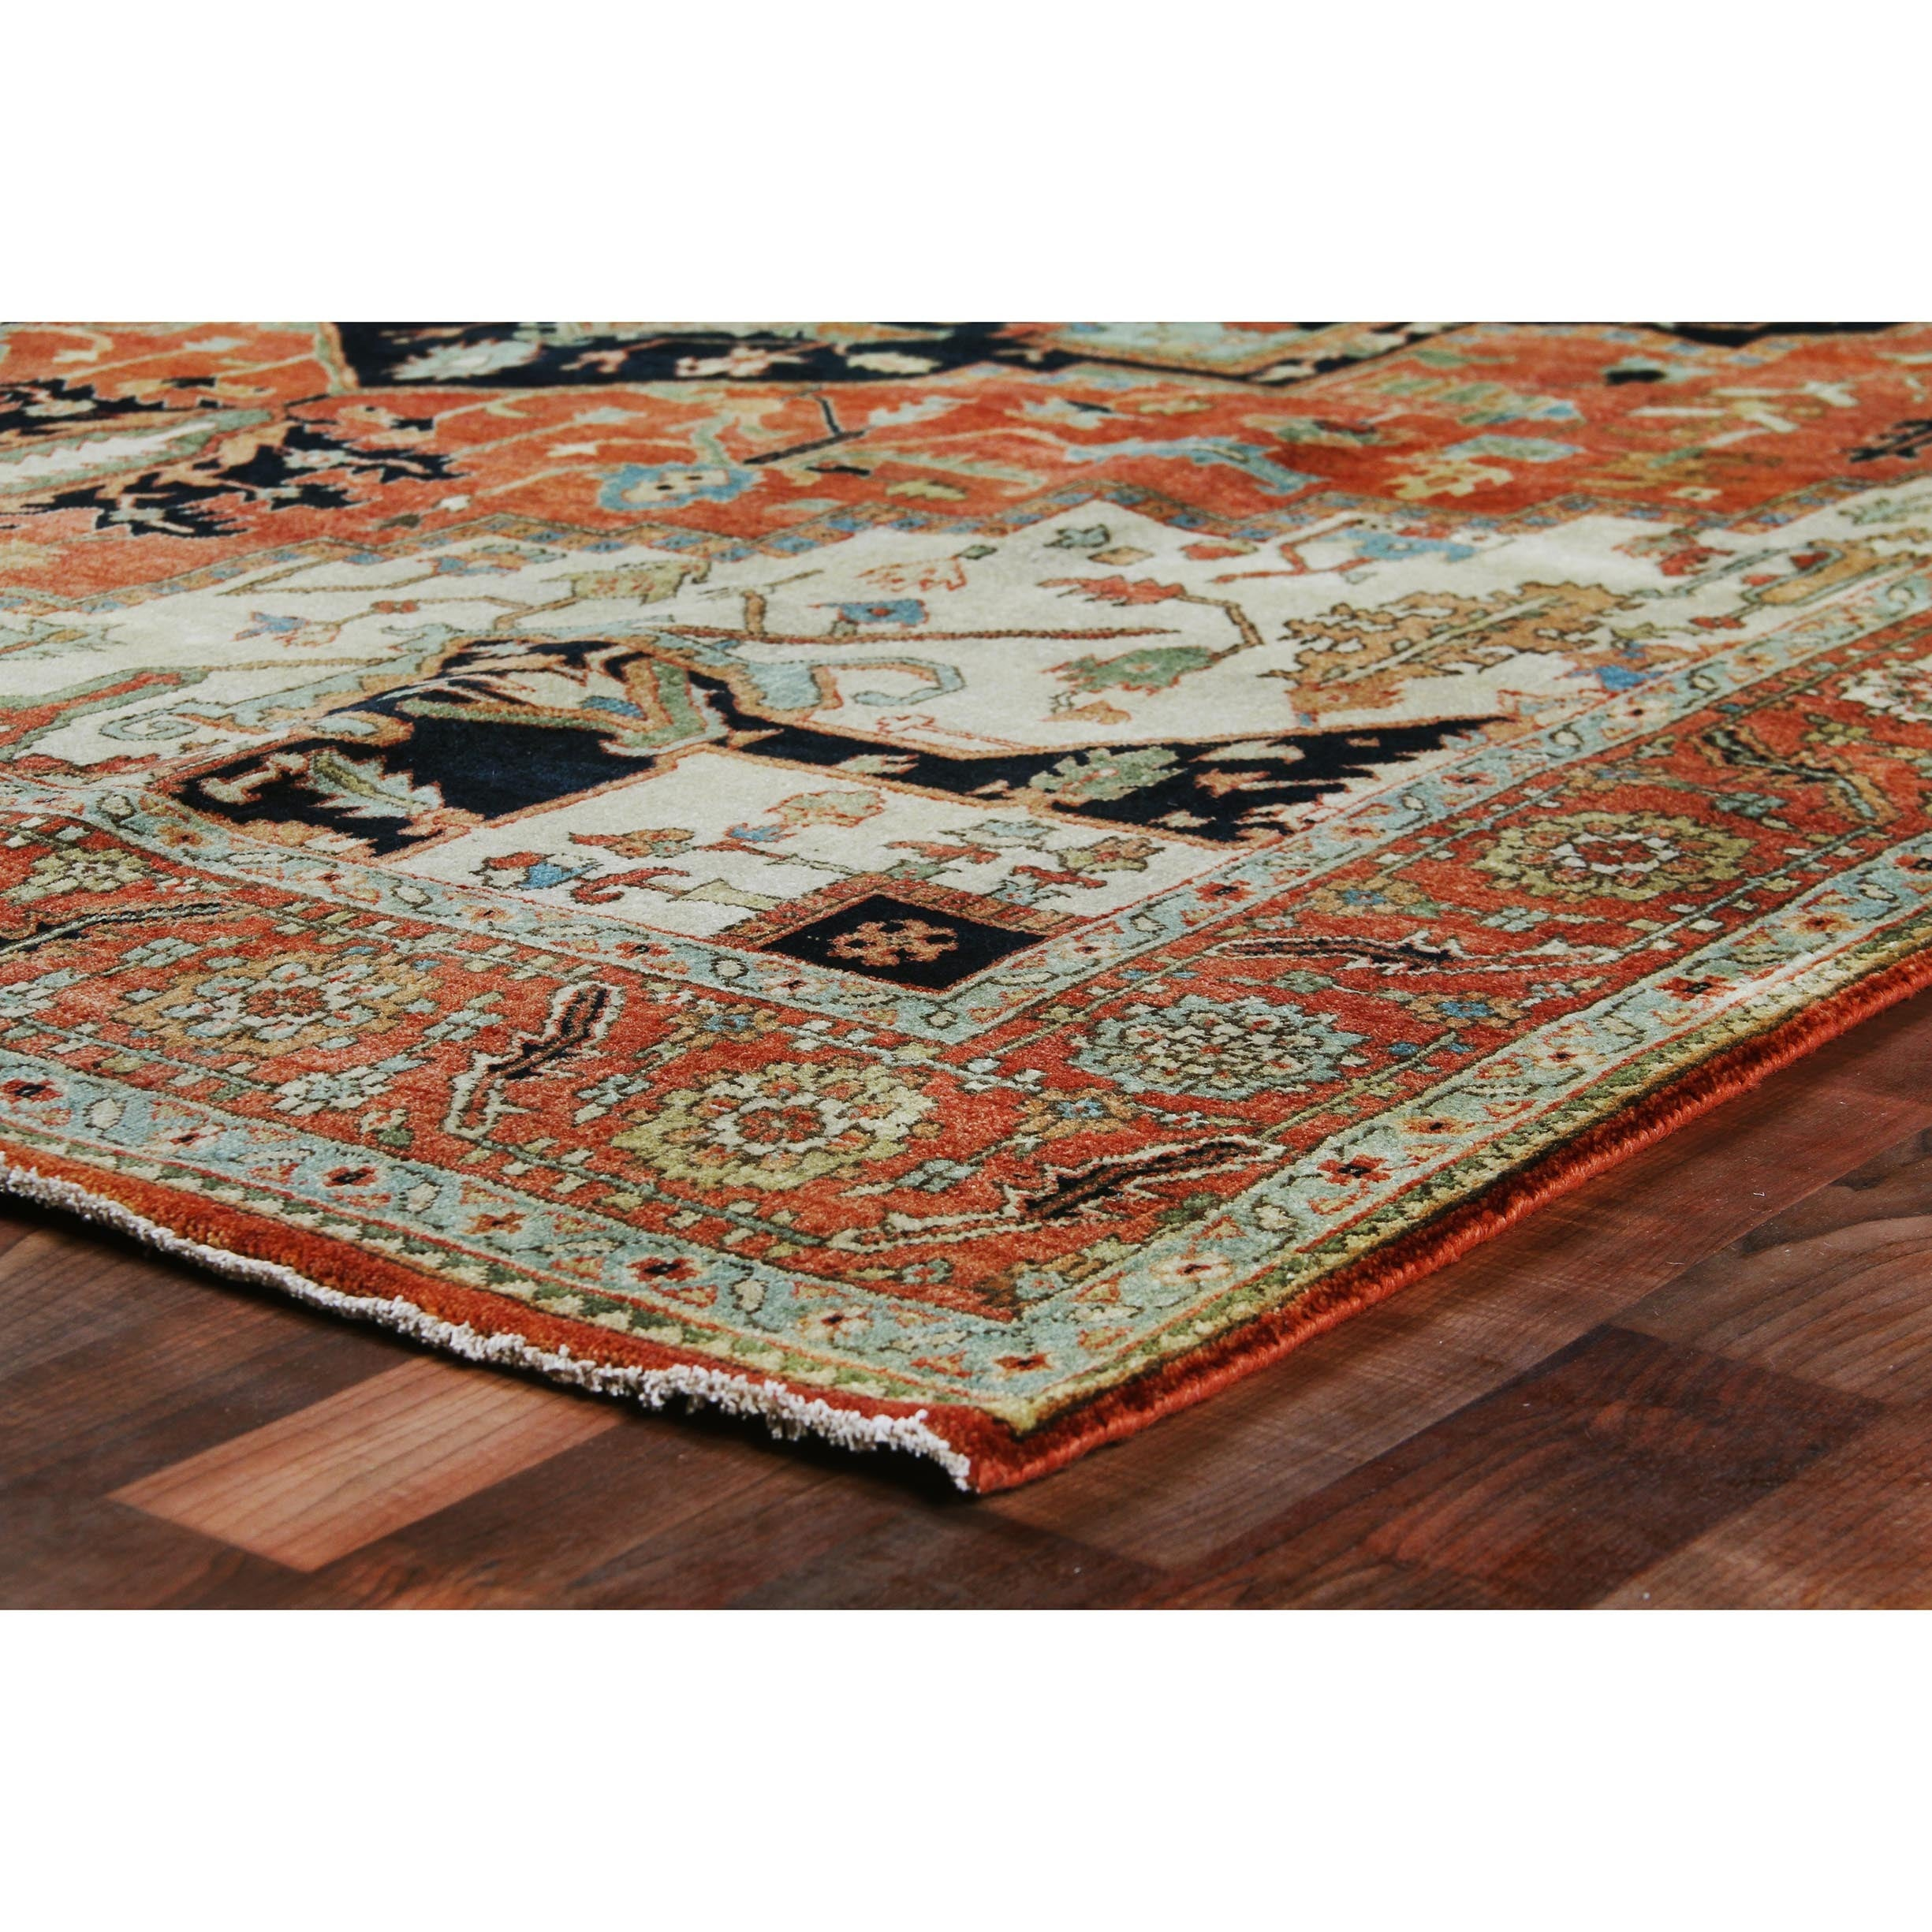 Exquisite Rugs Serapi Red Multi New Zealand Wool Rug 13 X 15 Free Shipping Today 18946339